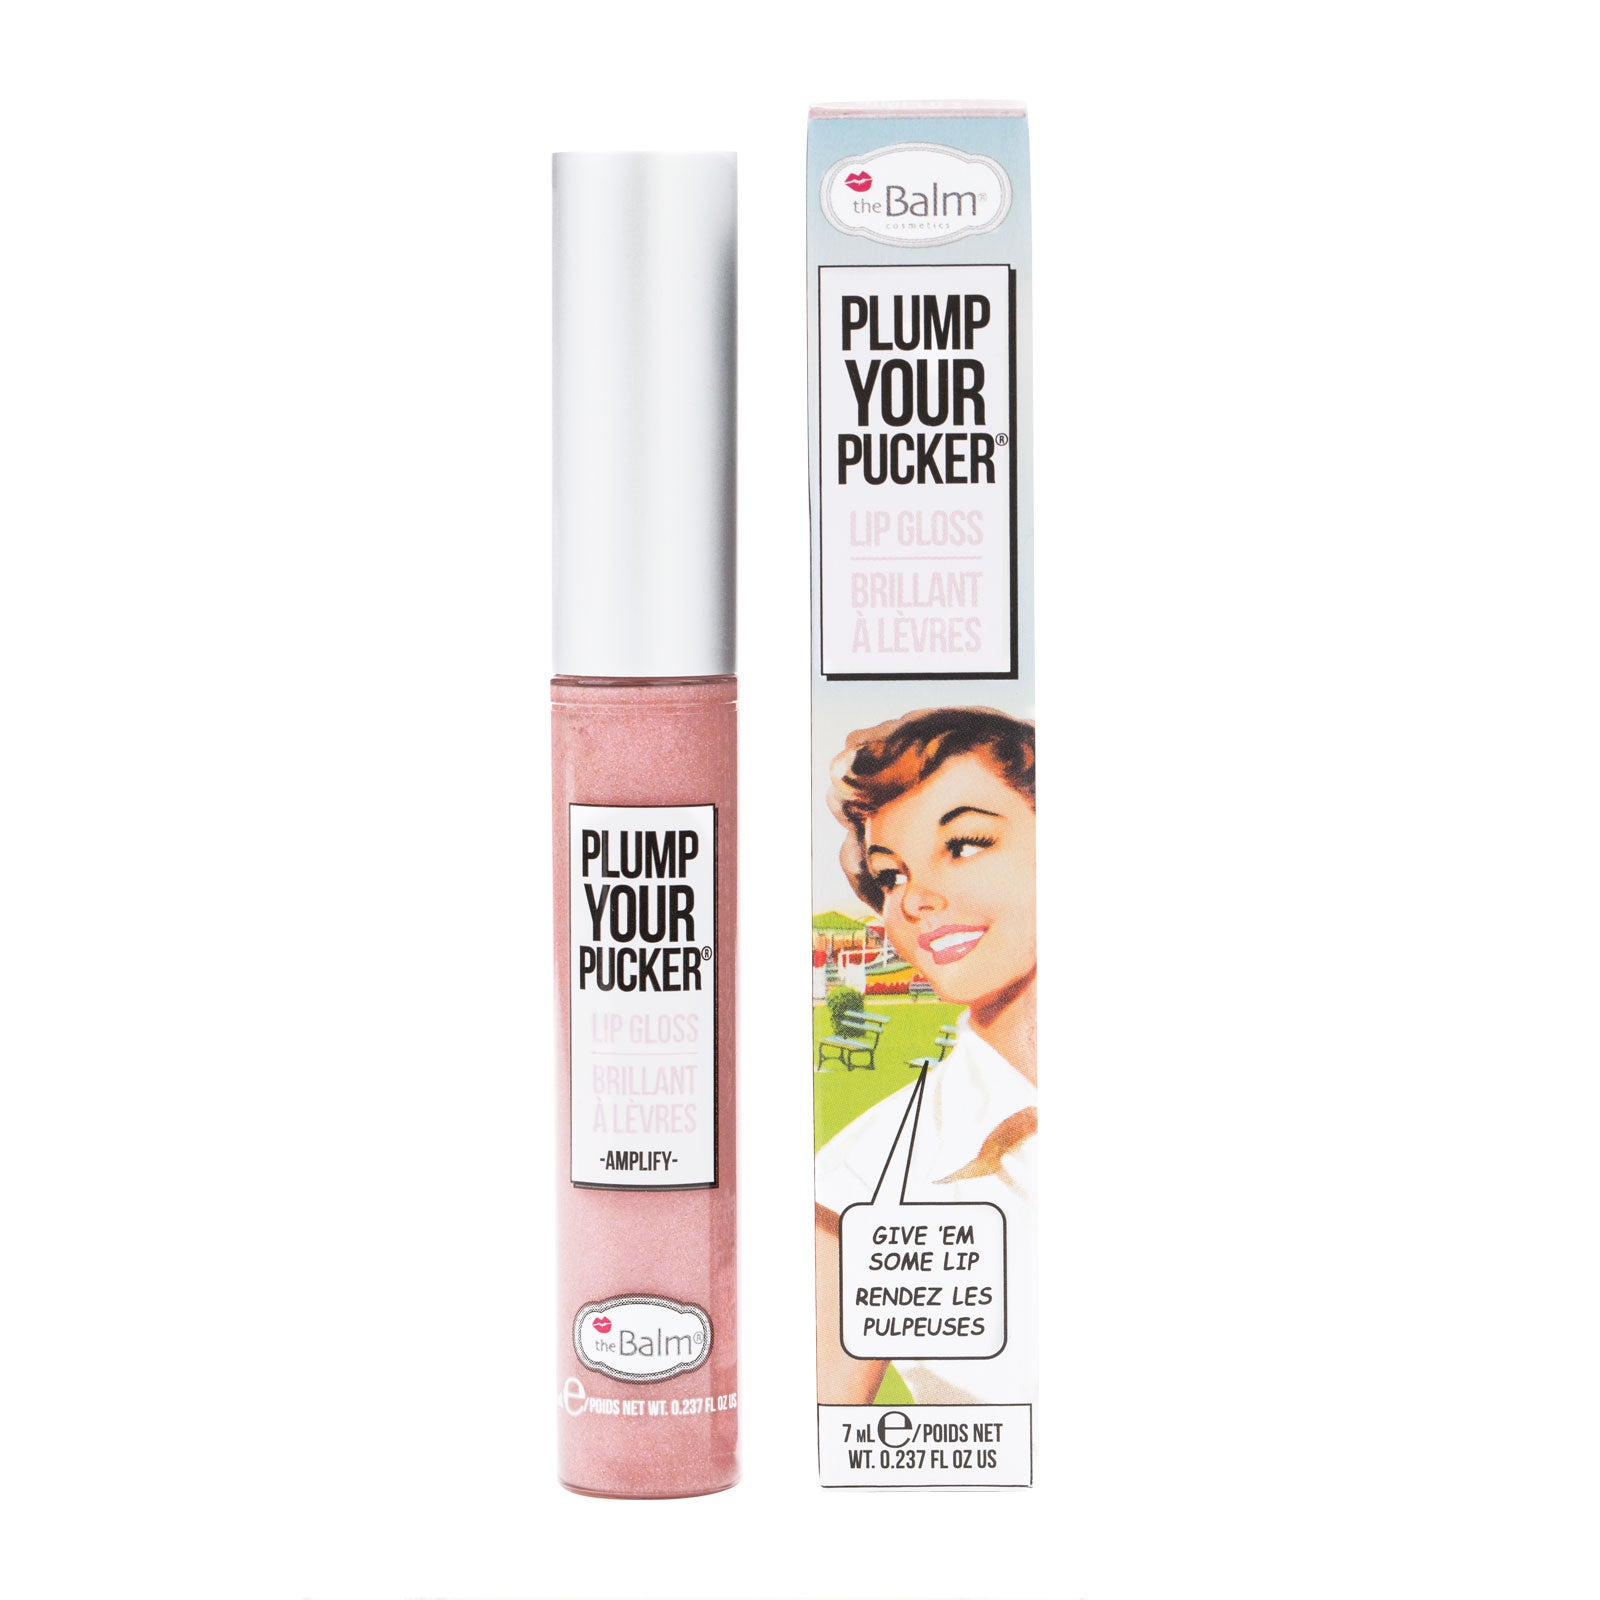 theBalm Plump Your Pucker Lip Gloss 7ml